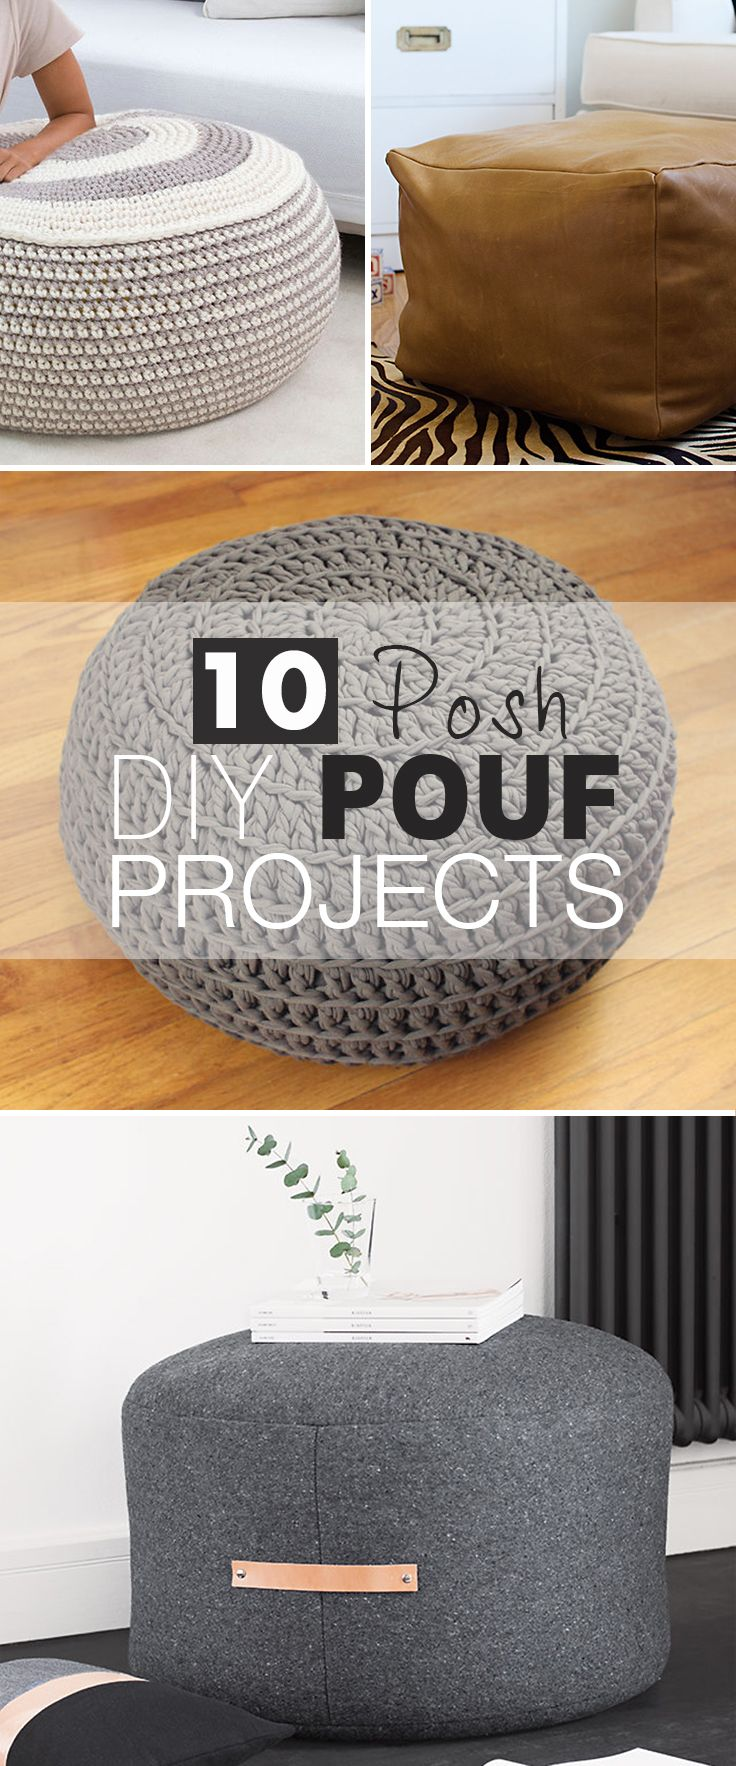 10 Posh DIY Pouf Projects! • Click thru to see all the ideas, projects and tut...